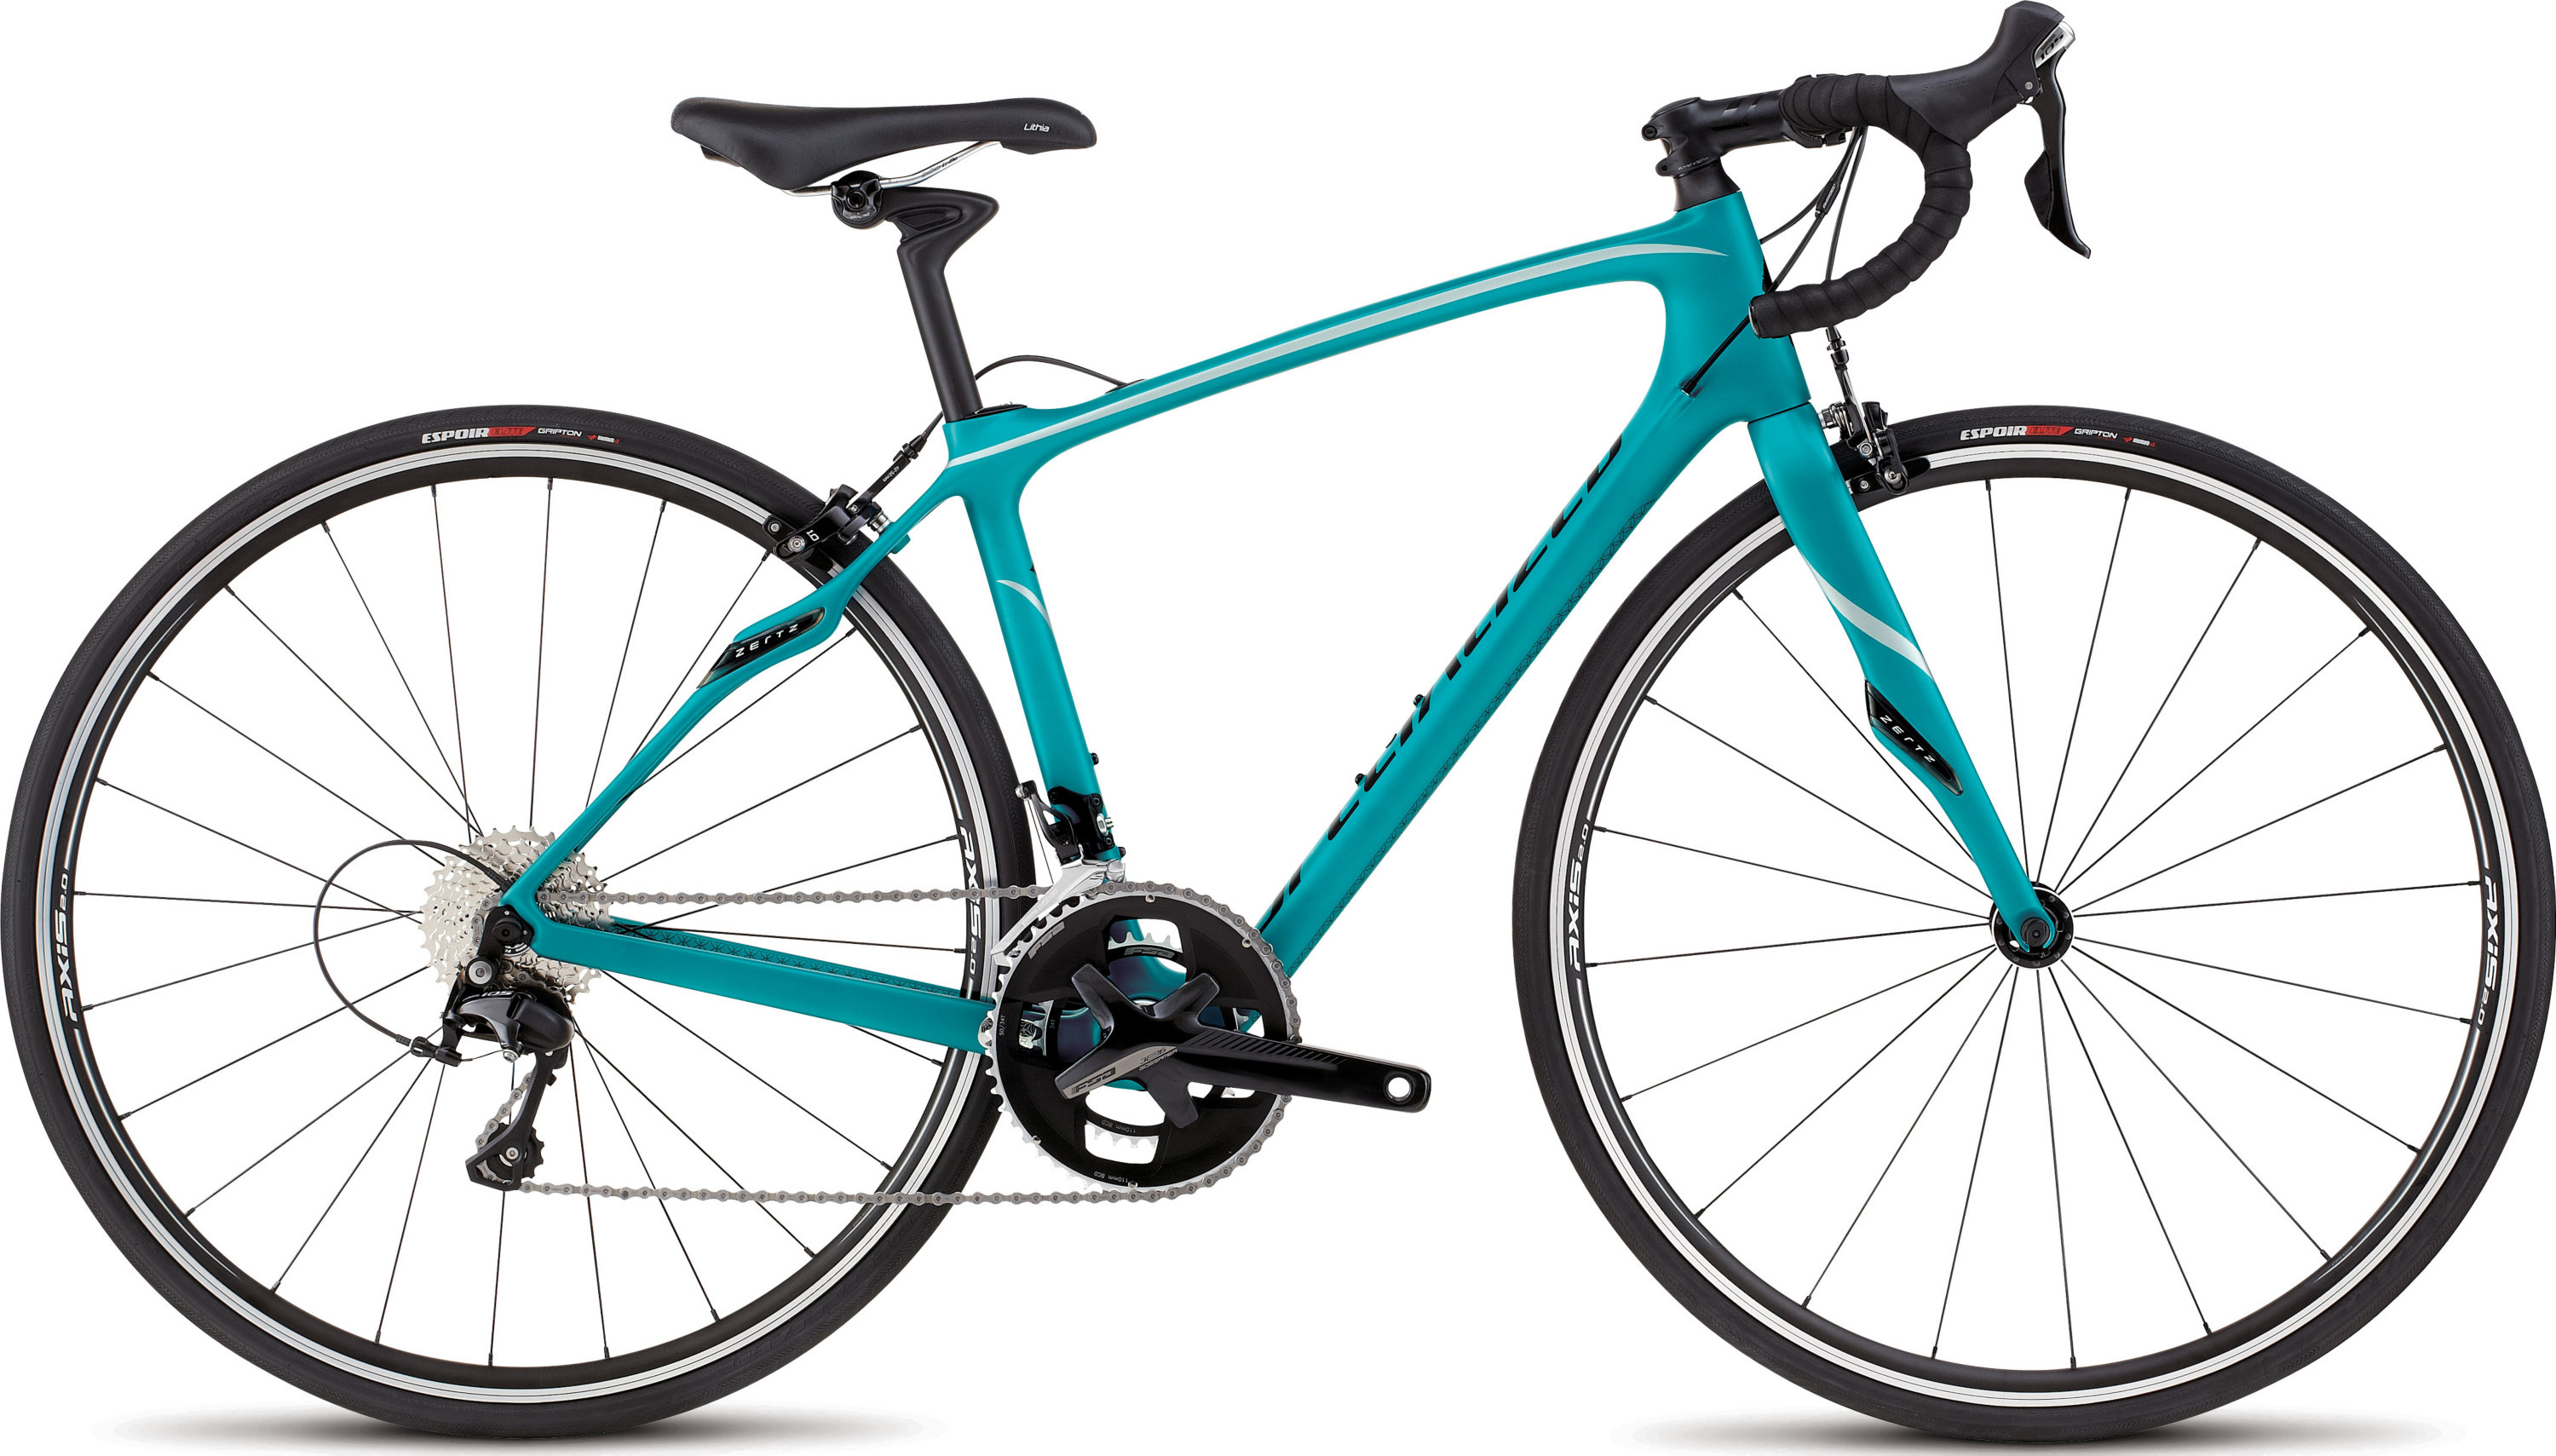 SPECIALIZED RUBY SPORT PRLTUR/LTSIL/METBLK 54 - SPECIALIZED RUBY SPORT PRLTUR/LTSIL/METBLK 54